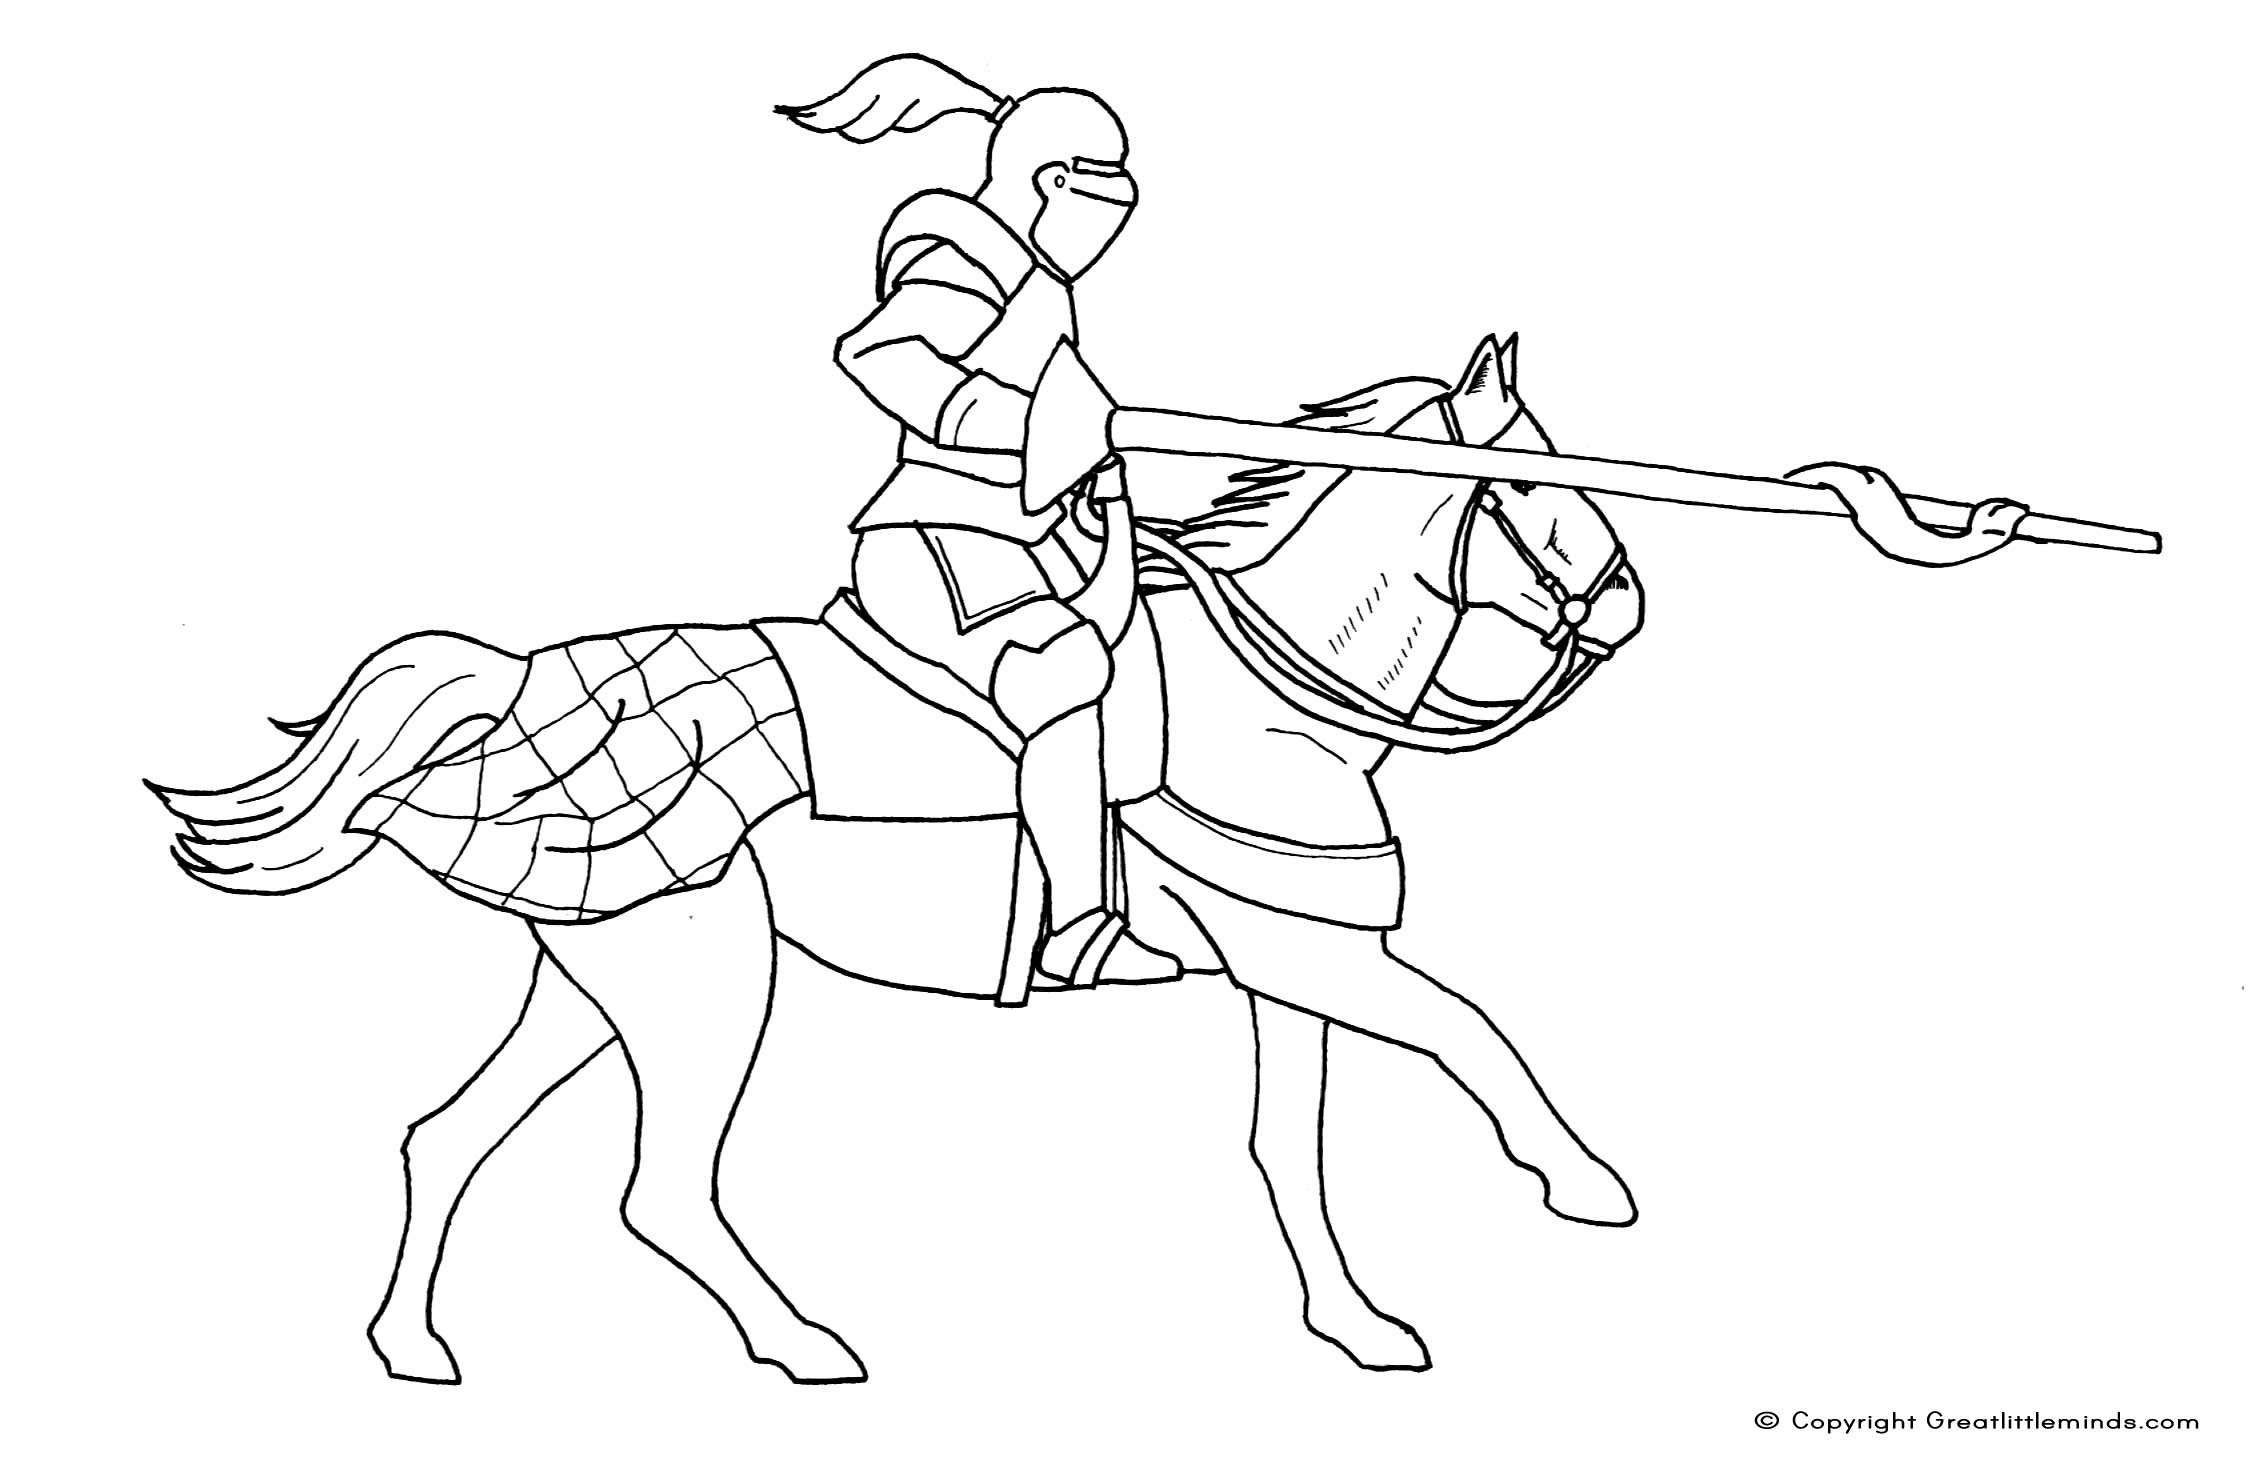 Free Coloring Pages Knights : Free coloring pages of knights jousting